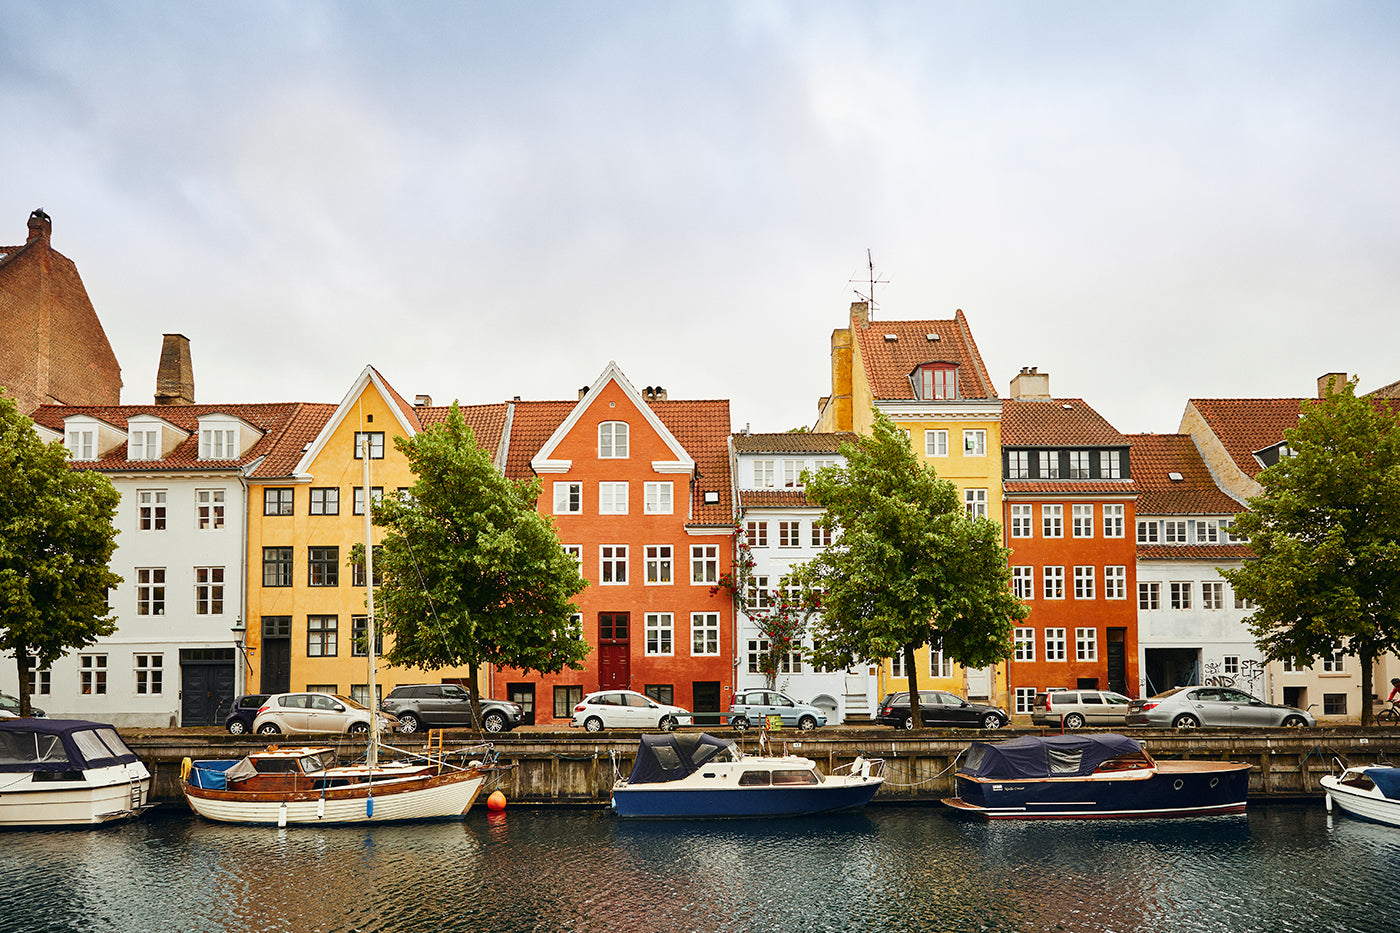 On the Go in Copenhagen: A Father-Son Duo Explore Their Hometown